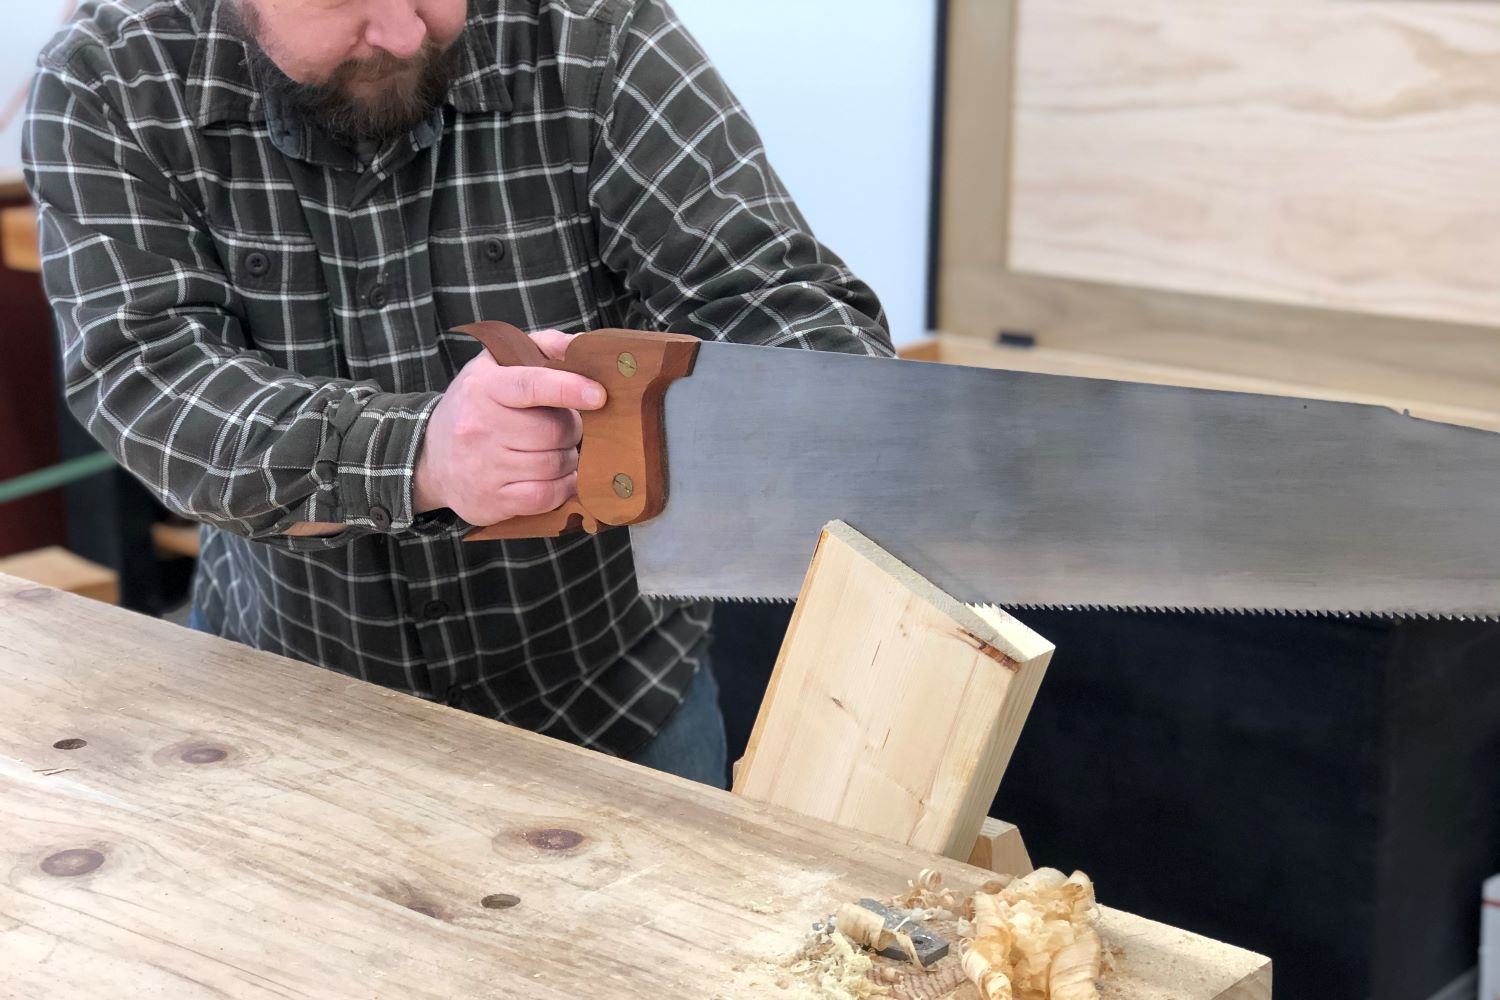 Resawing with a Hand Saw